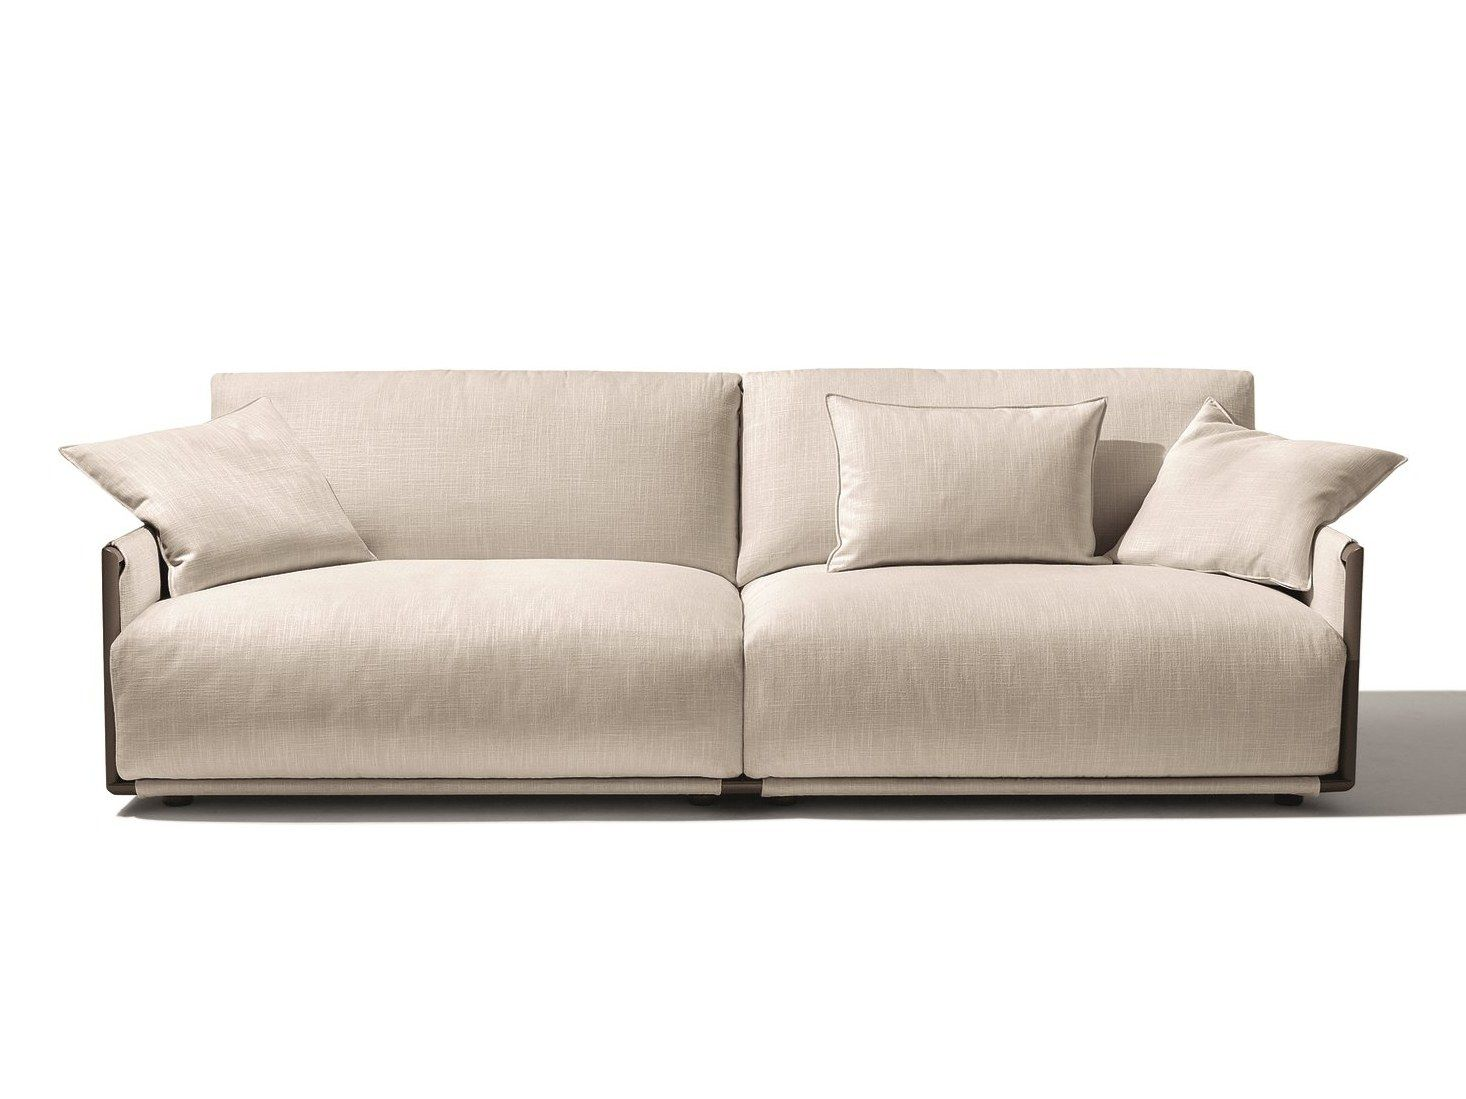 2 Seater Fabric Sofa Adam 2 Seater Sofa By Giorgetti Fabric